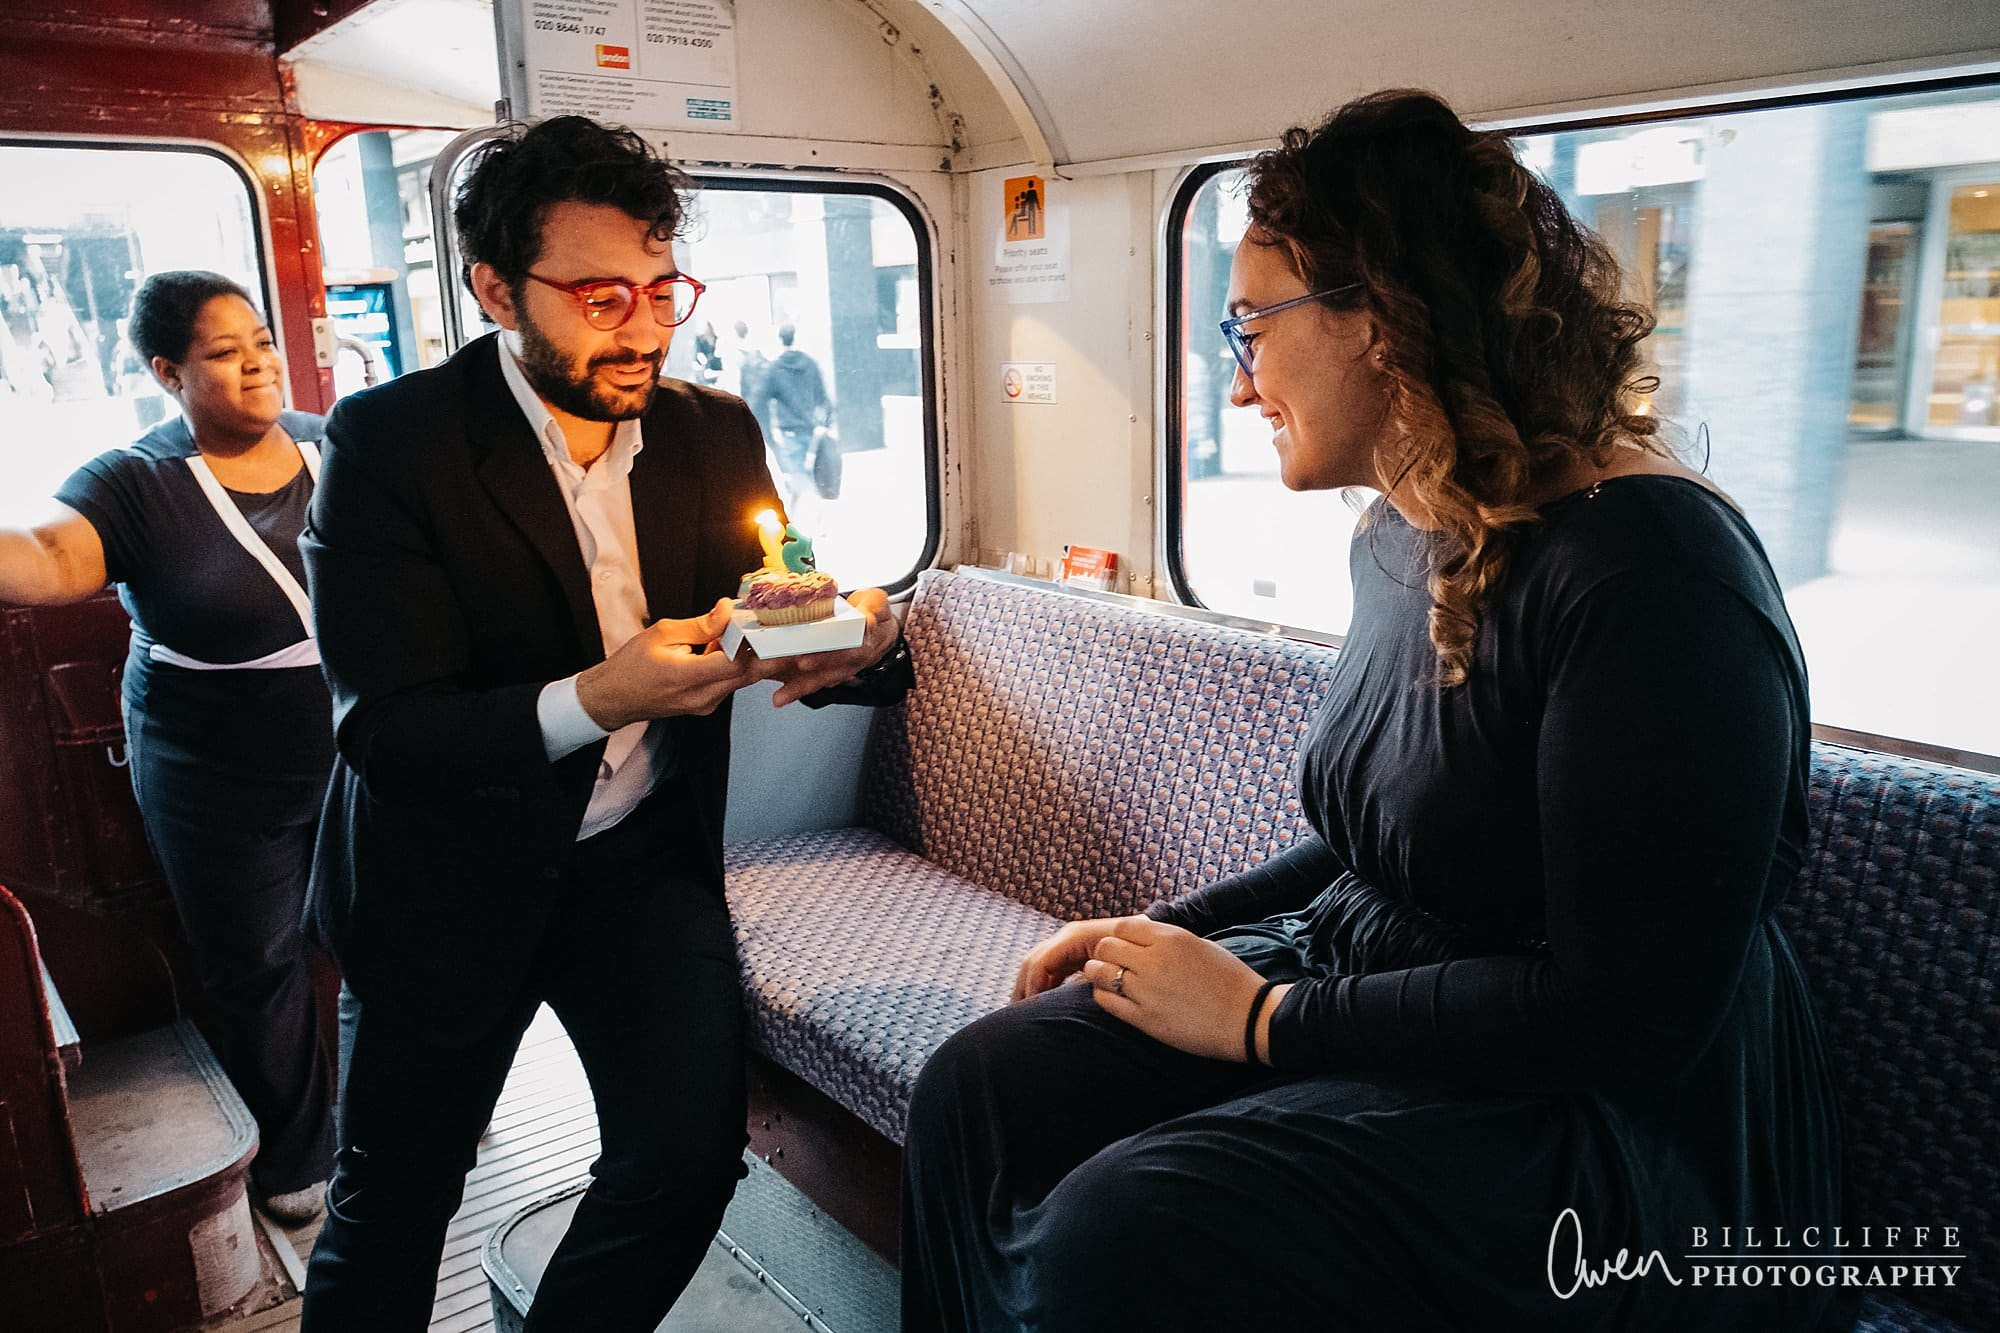 london engagement proposal photographer routemaster gr 017 - A Romantic Marriage Proposal on a London Routemaster Bus